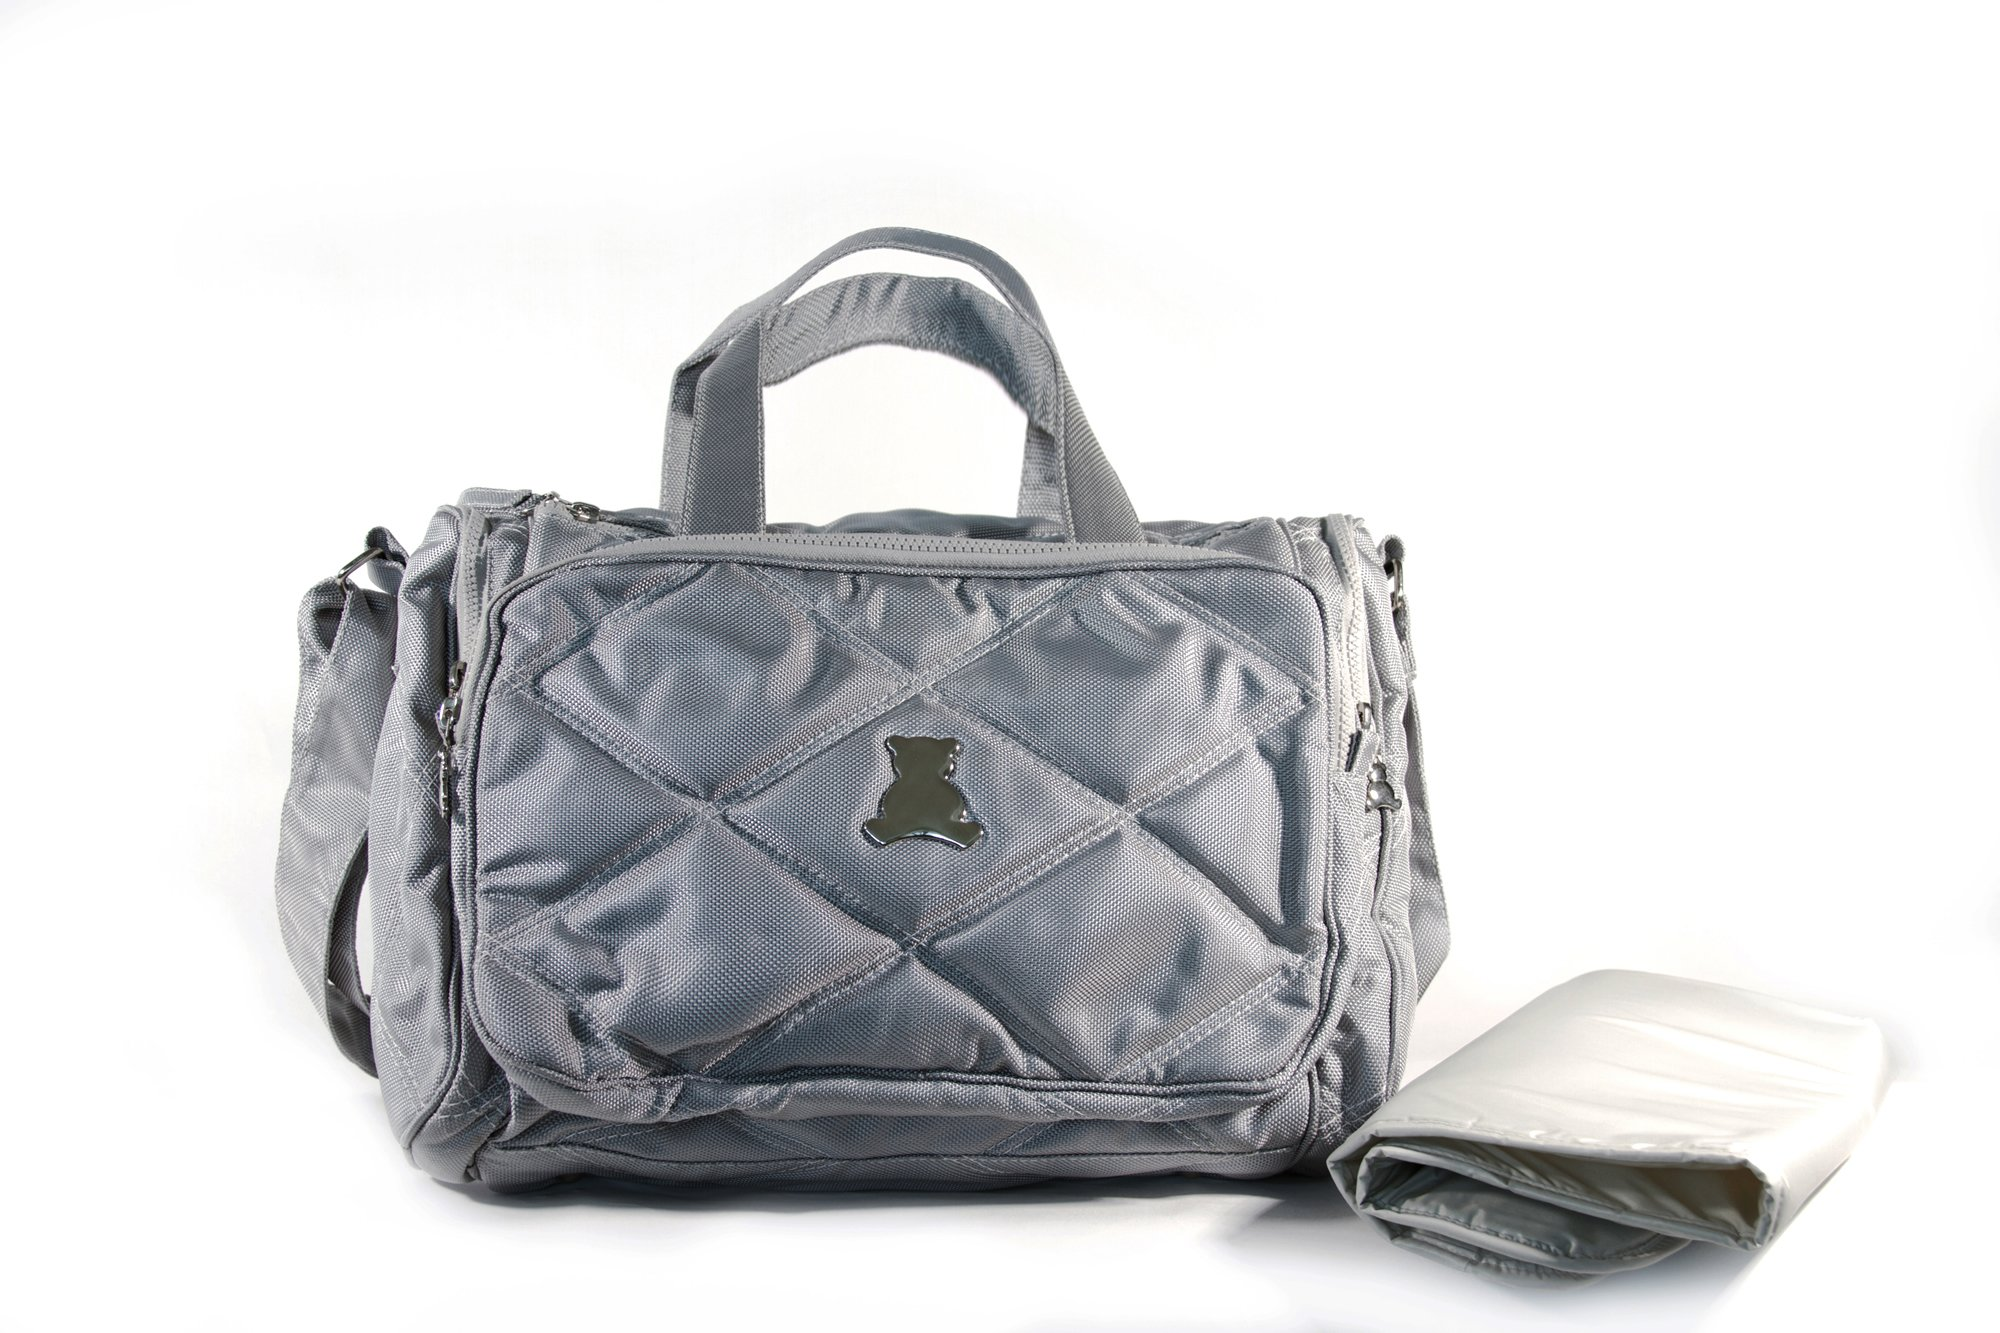 BL BABY - Elegance Collec. - SM - Crossbody Bag - Compart. - Nylon Material - Gray - 5x17x12'' by BL BABY (Image #1)